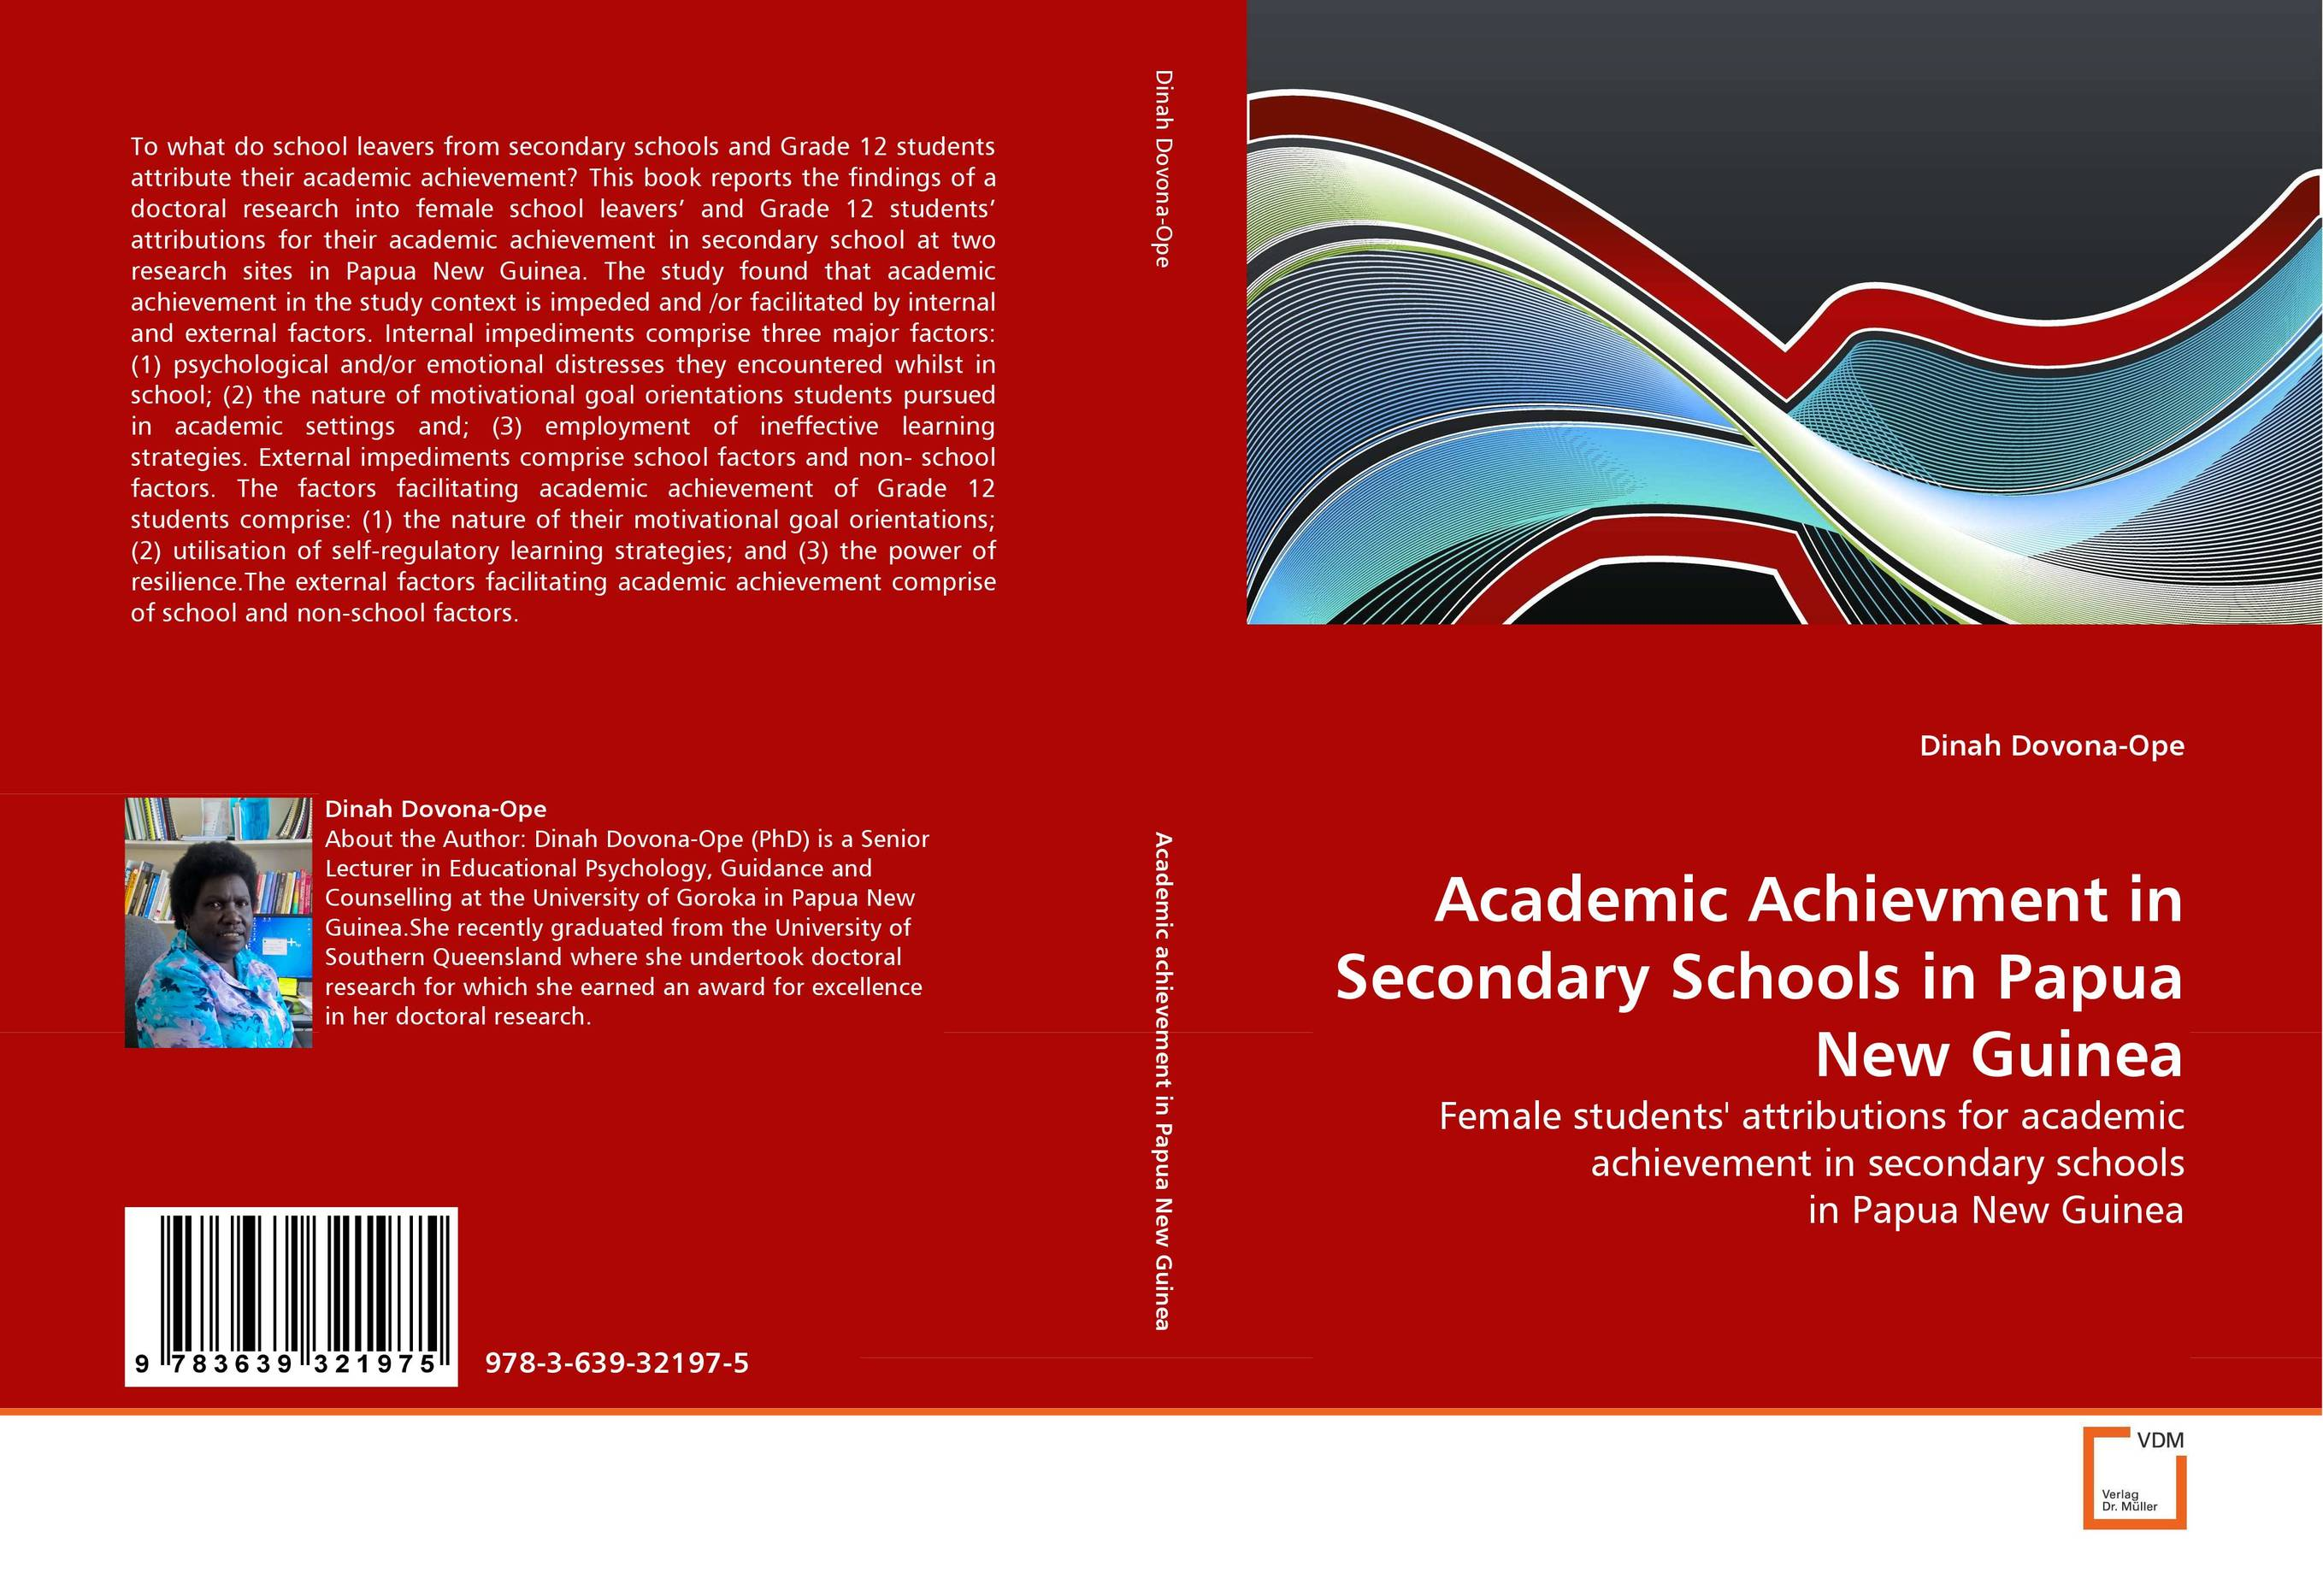 Academic Achievment in Secondary Schools in Papua New Guinea